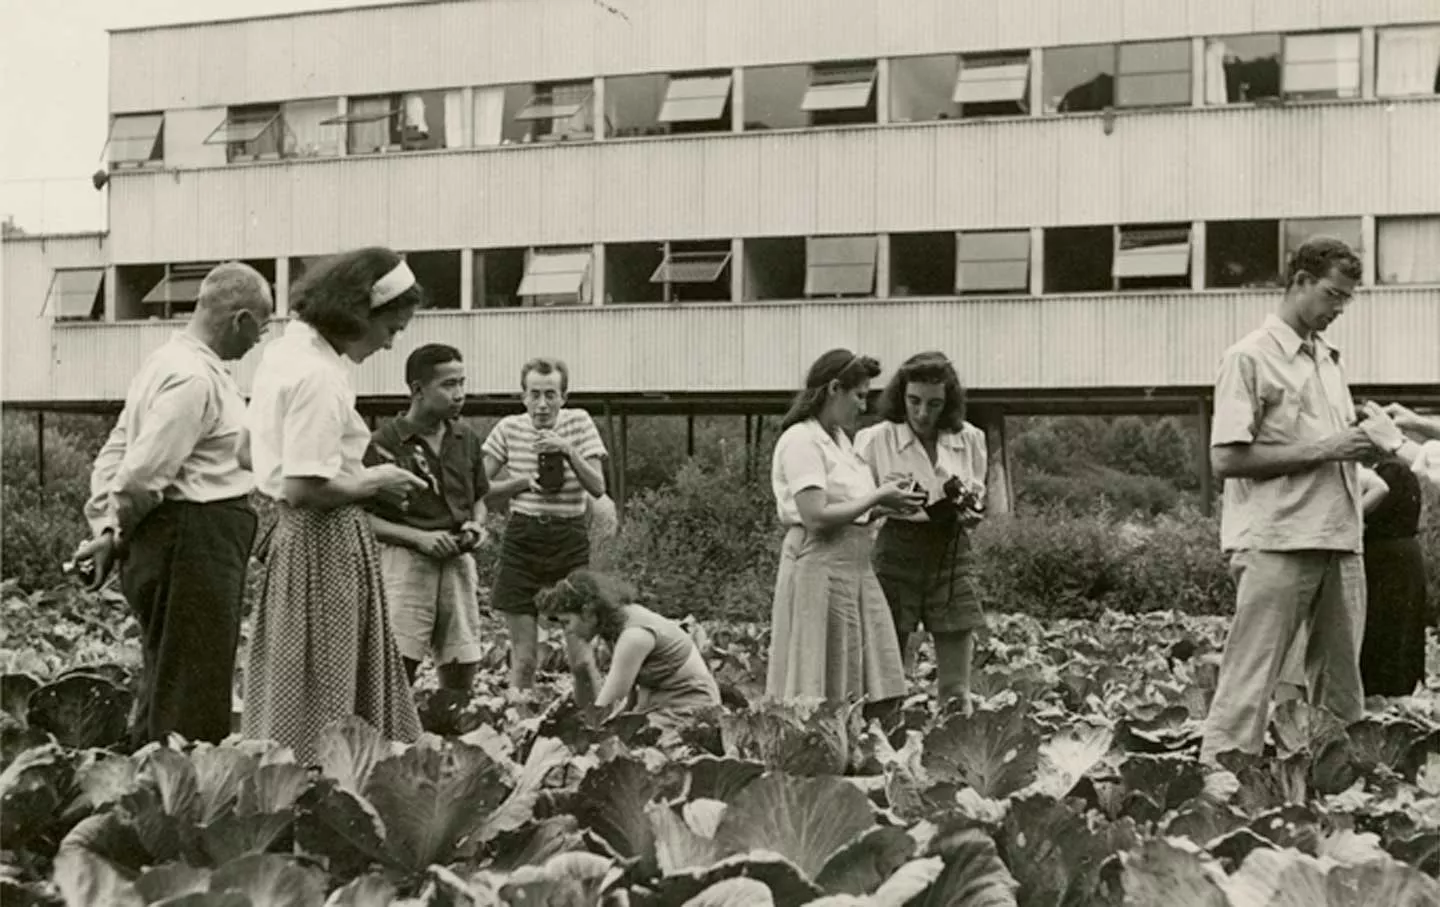 Photography class in a cabbage patch at Black Mountain College. Photography by Barbara Morgan. Courtesy Western Regional Archives, State Archives of North Carolina.